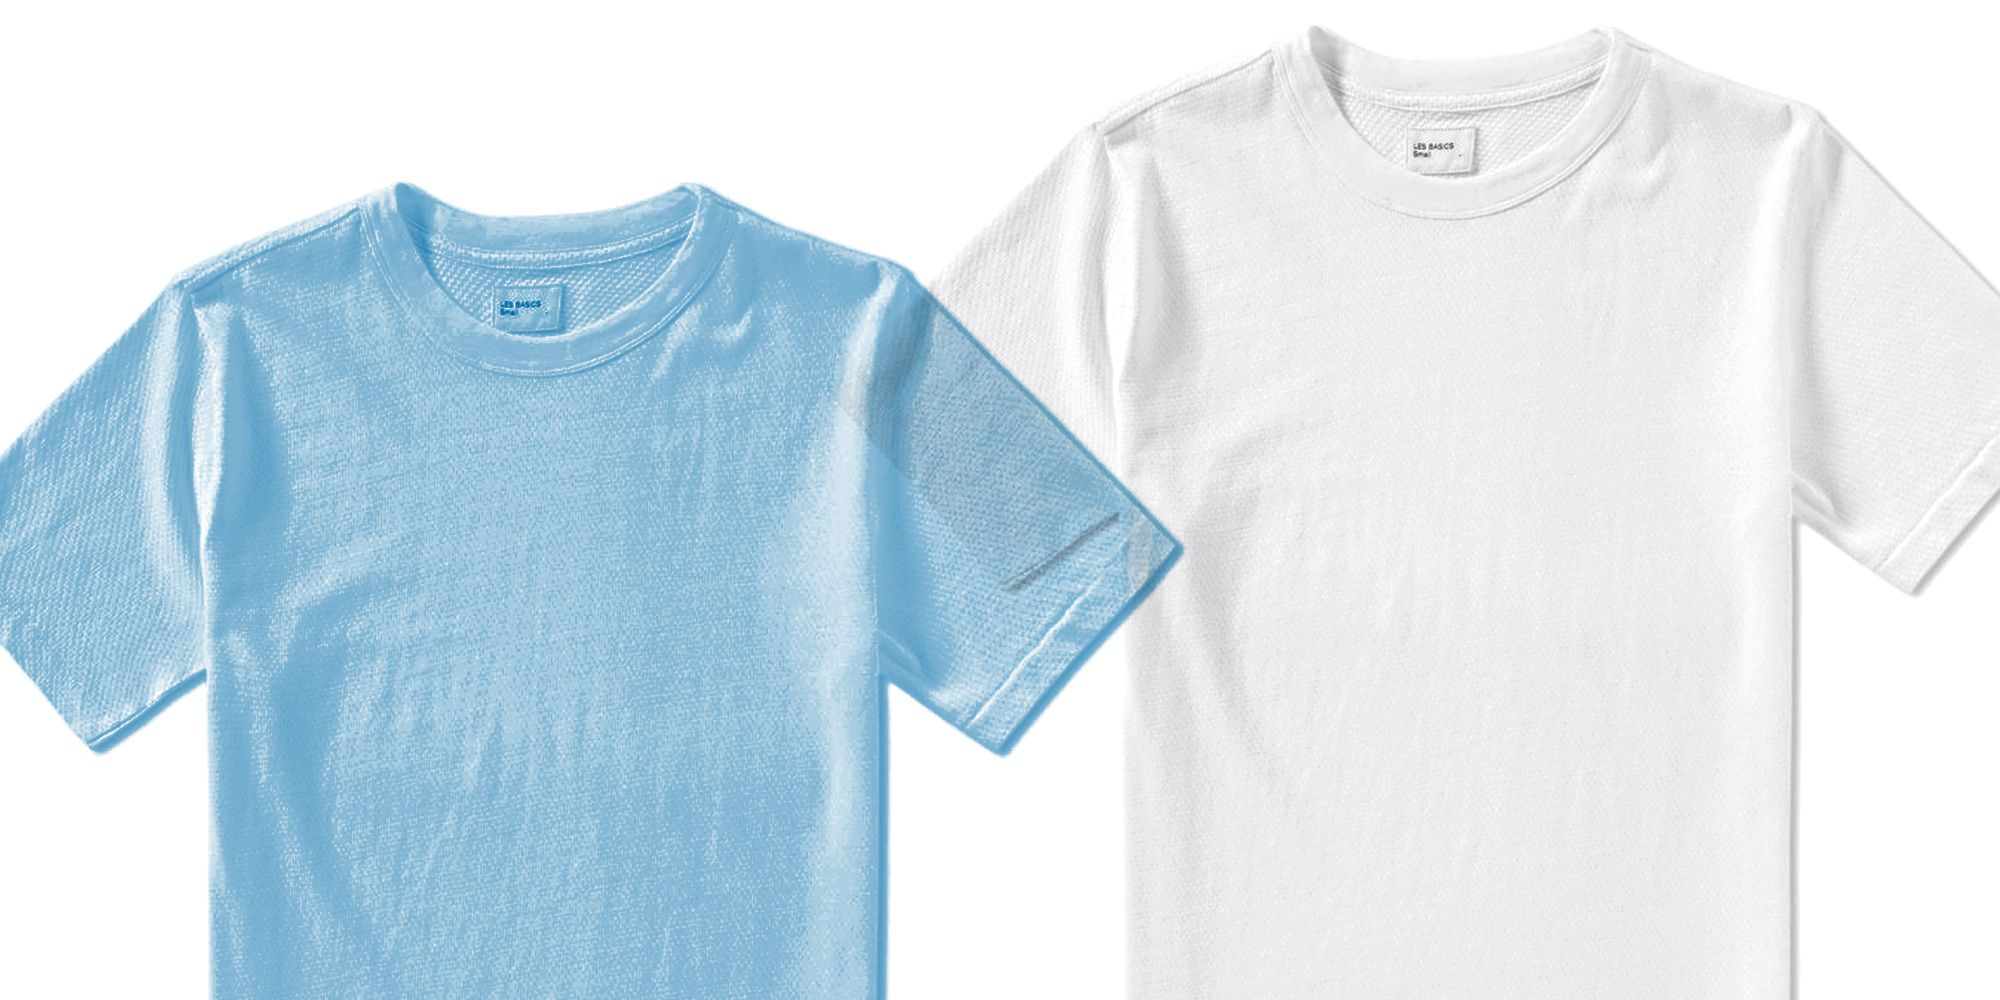 How To Keep Your White T Shirts Fresh This Summer